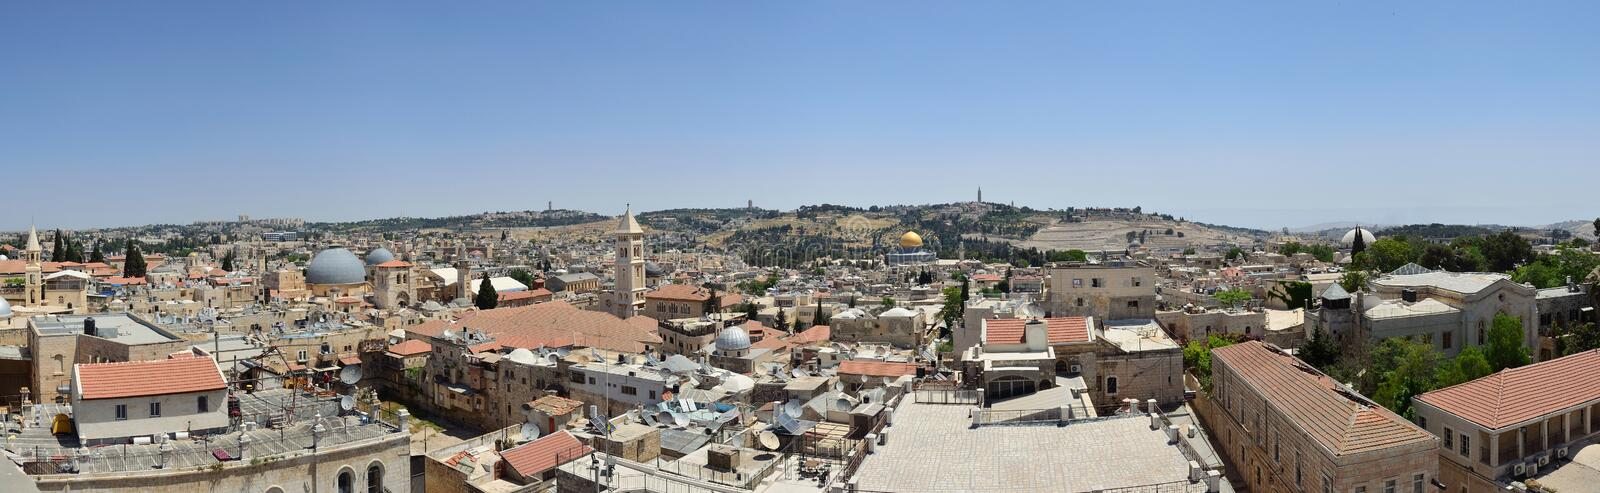 The roofs of ancient Jerusalem royalty free stock photography